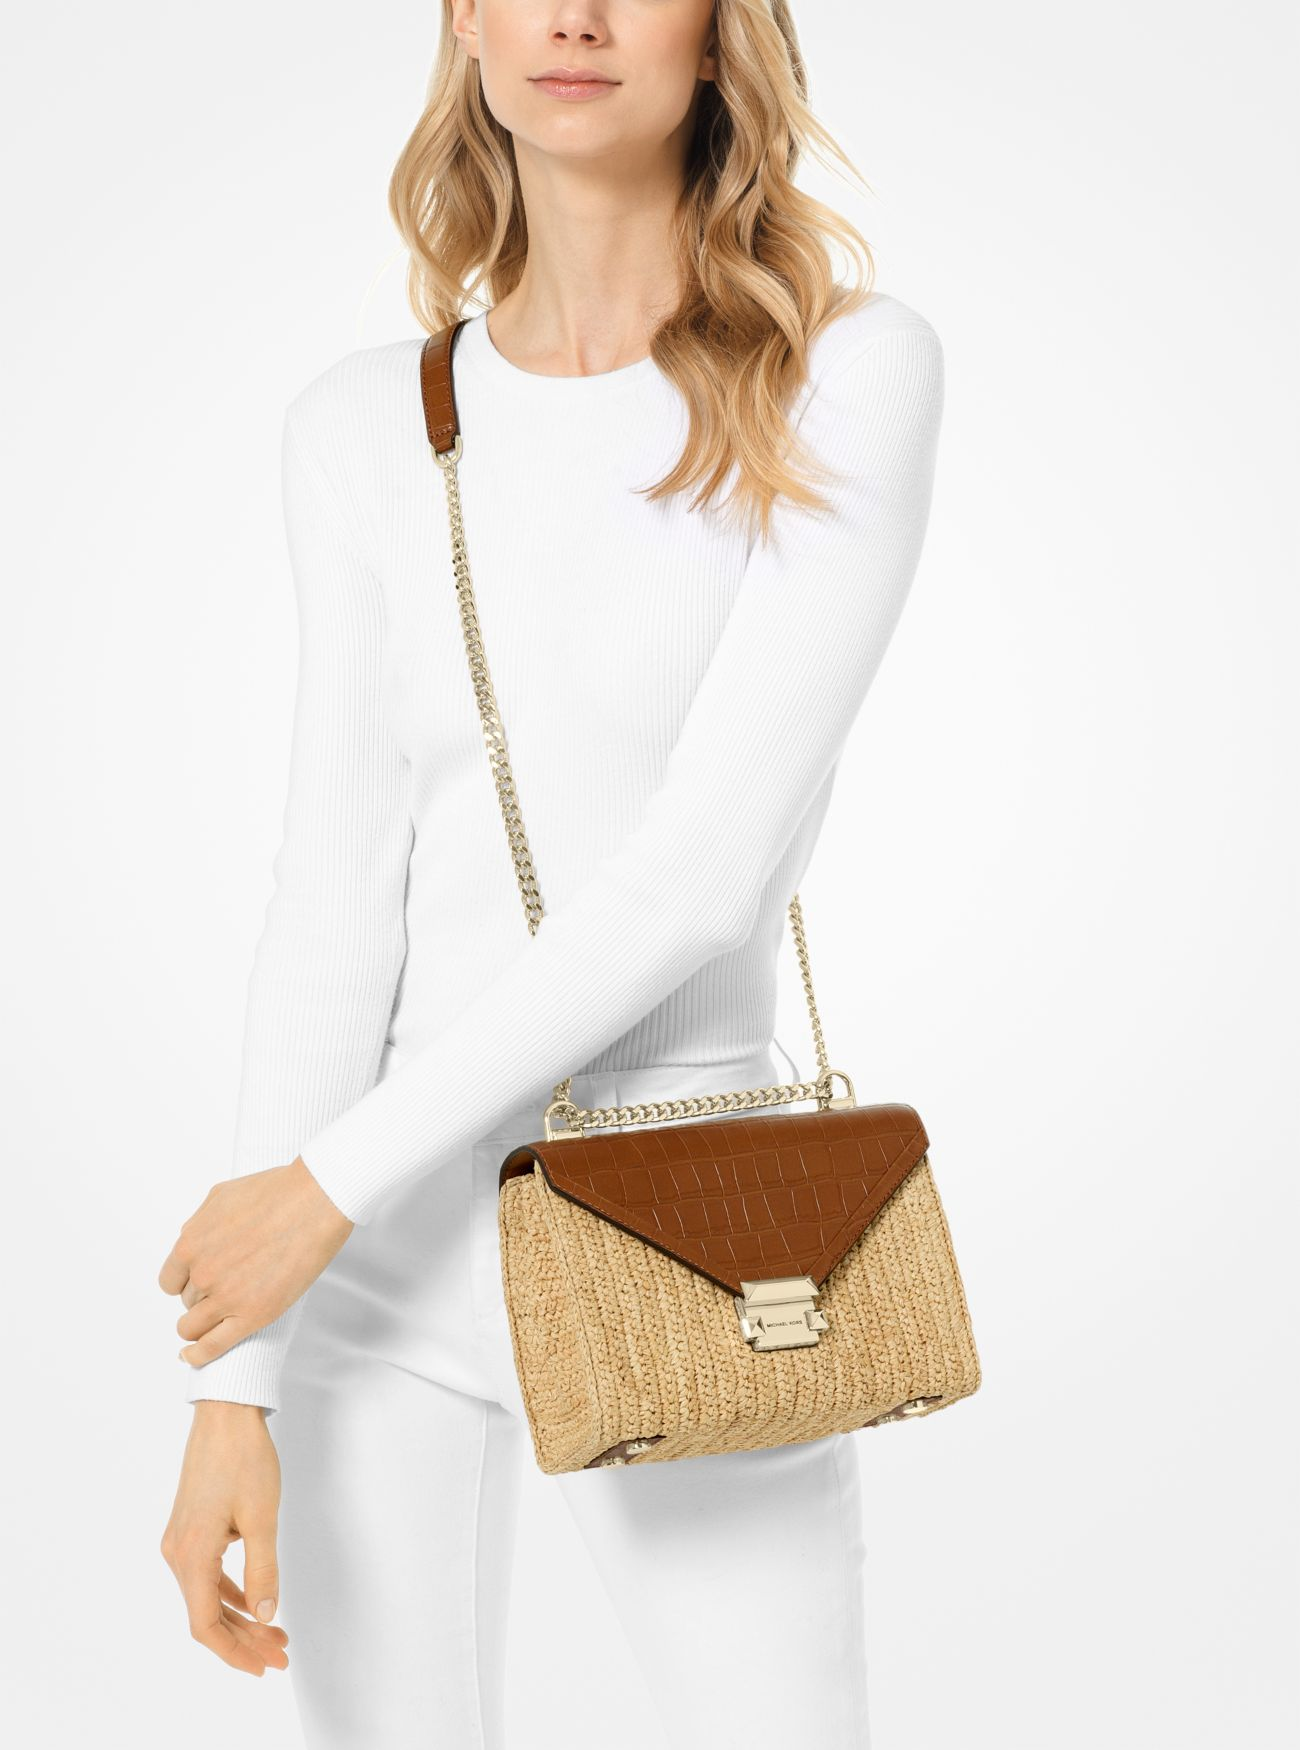 5f541dea11be ... Whitney Large Raffia and Leather Convertible Shoulder Bag